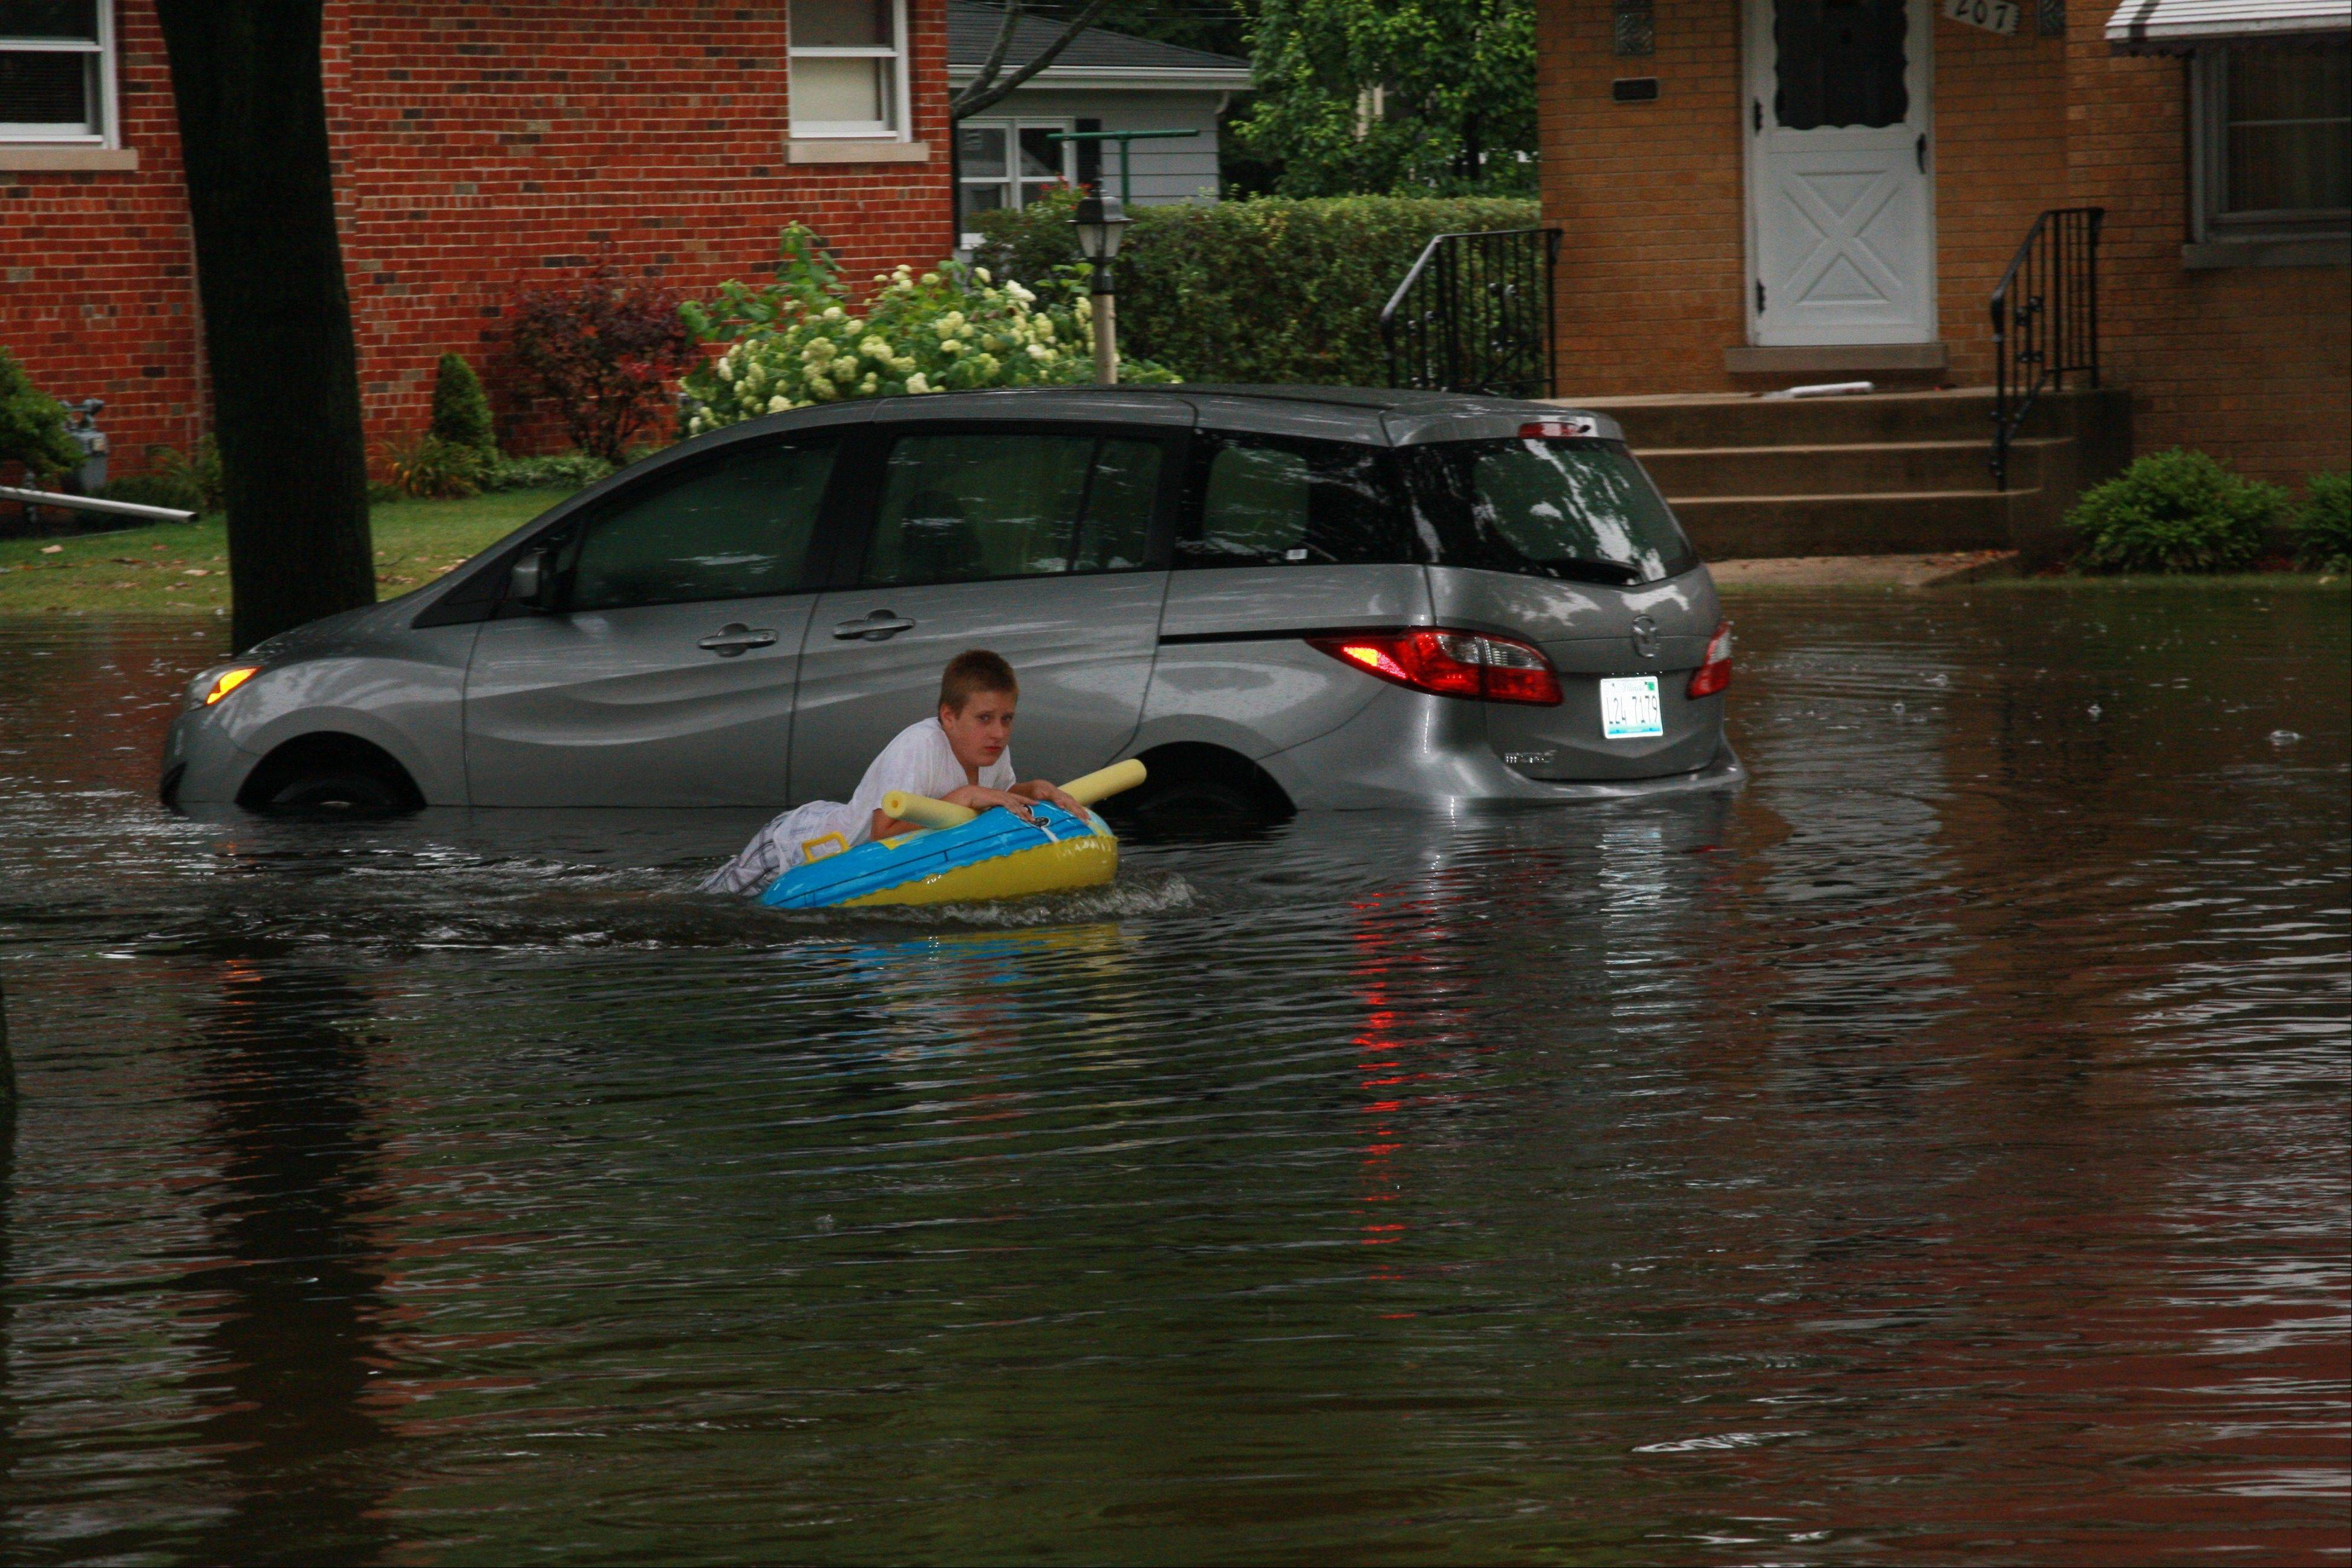 Rain water flooded the street along South Phelps Avenue in Arlington Heights on July 23.